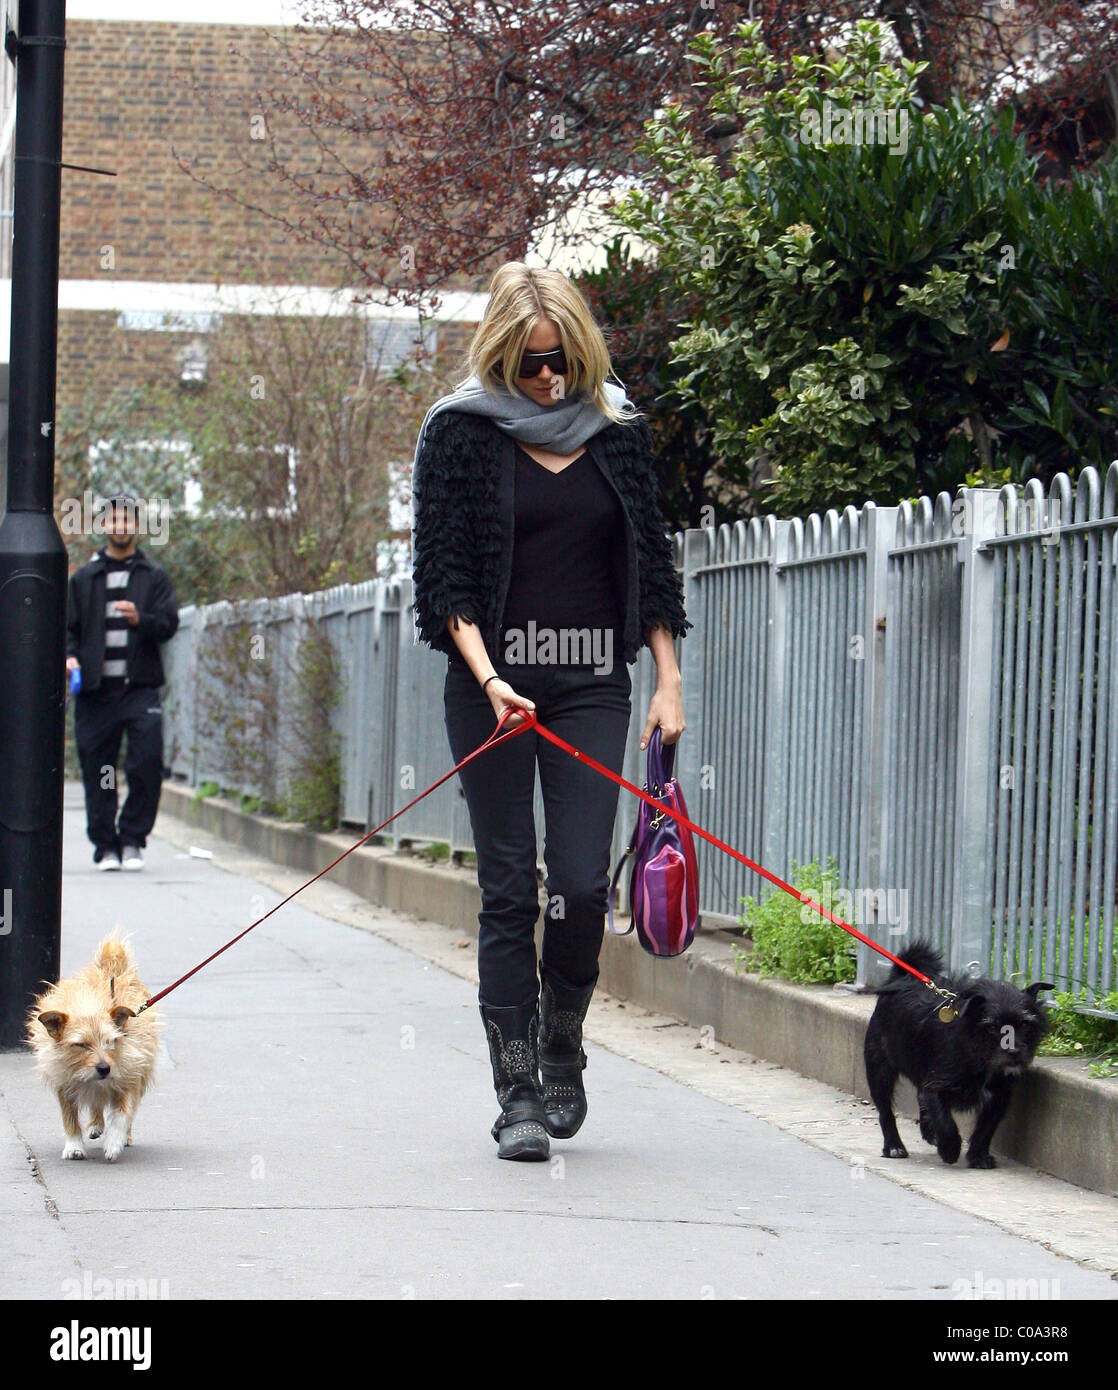 Dogs Home Near Rugeley: Paparazzi Dog Dogs Stock Photos & Paparazzi Dog Dogs Stock